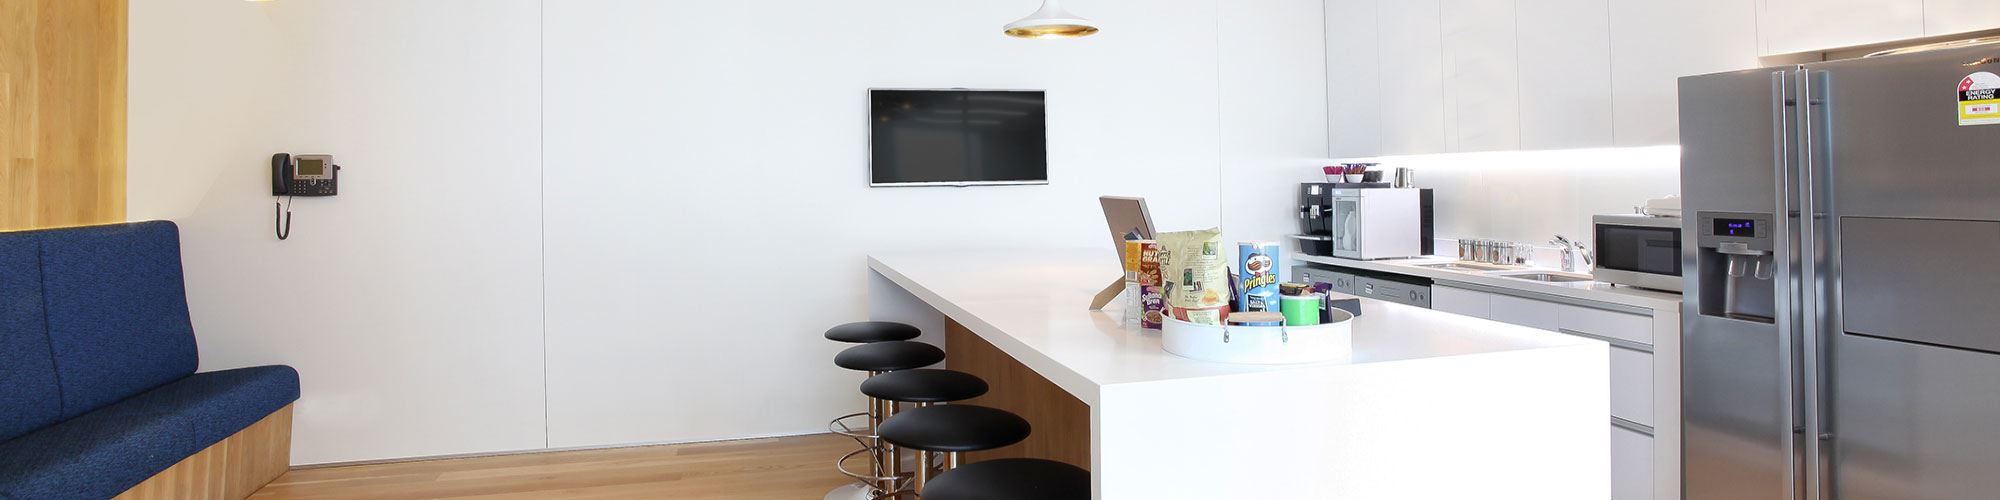 banner-pwctower-auckland-kitchen.jpg